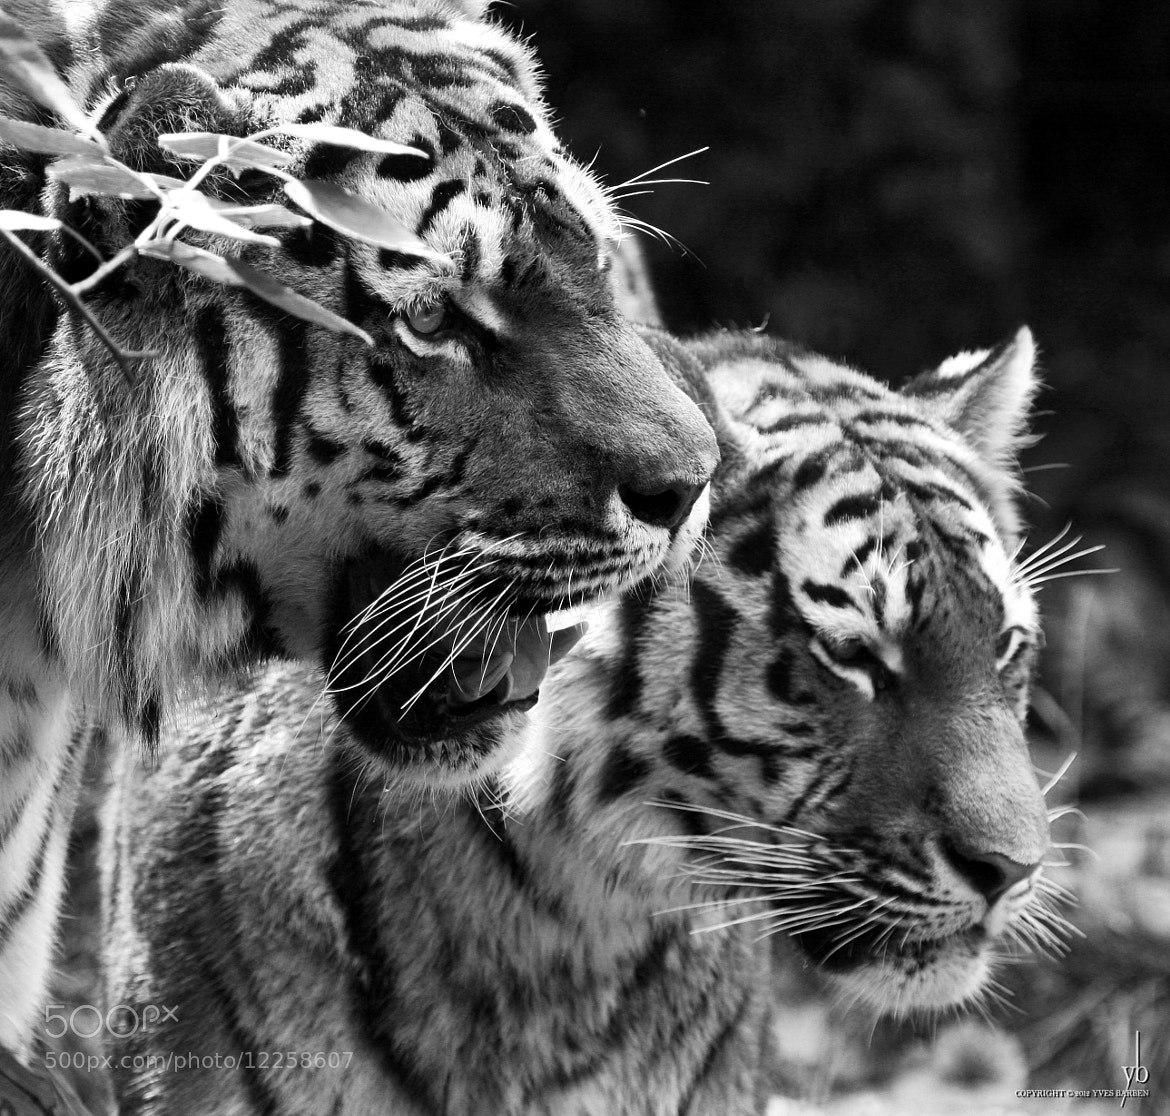 Photograph tiger and tiger by y b on 500px